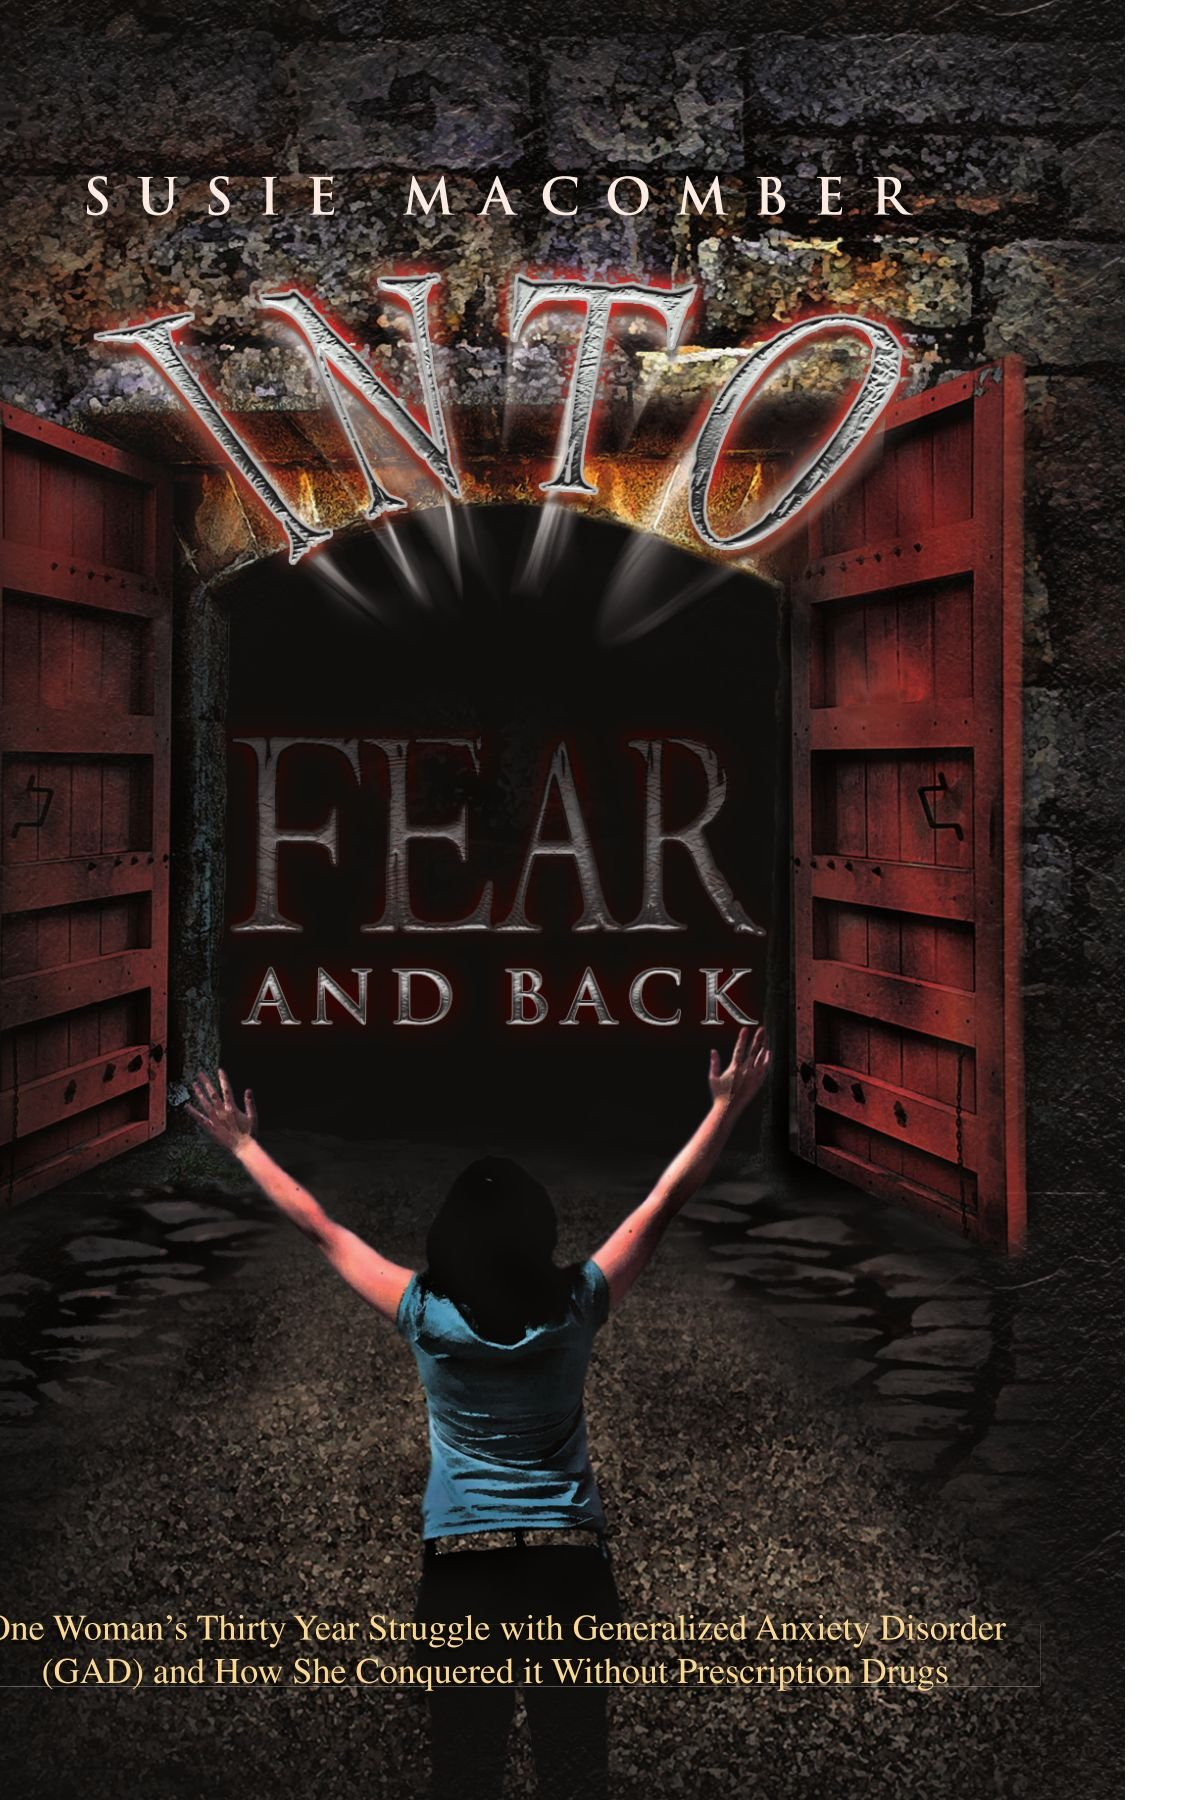 Into Fear and Back: One Woman's Thirty Year Struggle with Generalized Anxiety Disorder (GAD) and How She Conquered it Without Prescription Drugs PDF